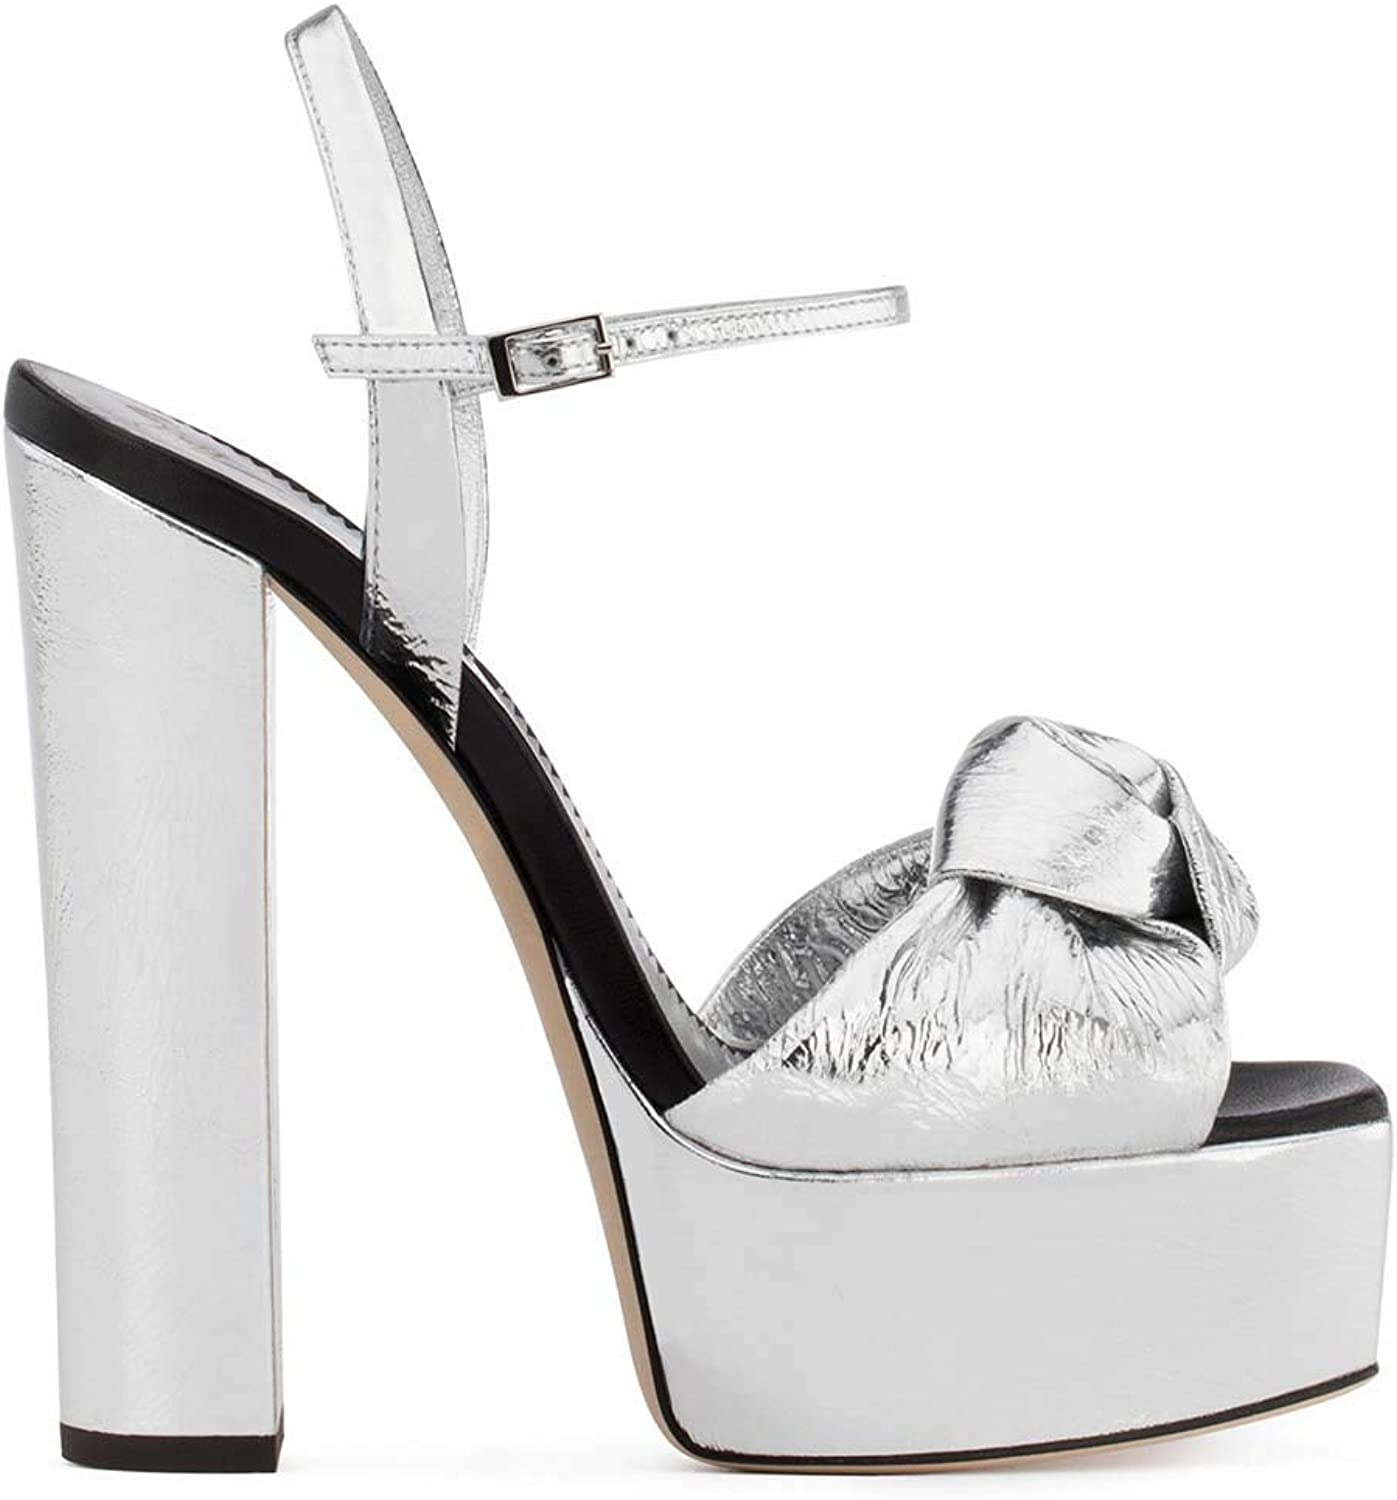 Womens Platform Ankle Strap Chunky High Heels, Sexy Peep Toe Dressy Sandal Wedding Party Evening shoes Pump